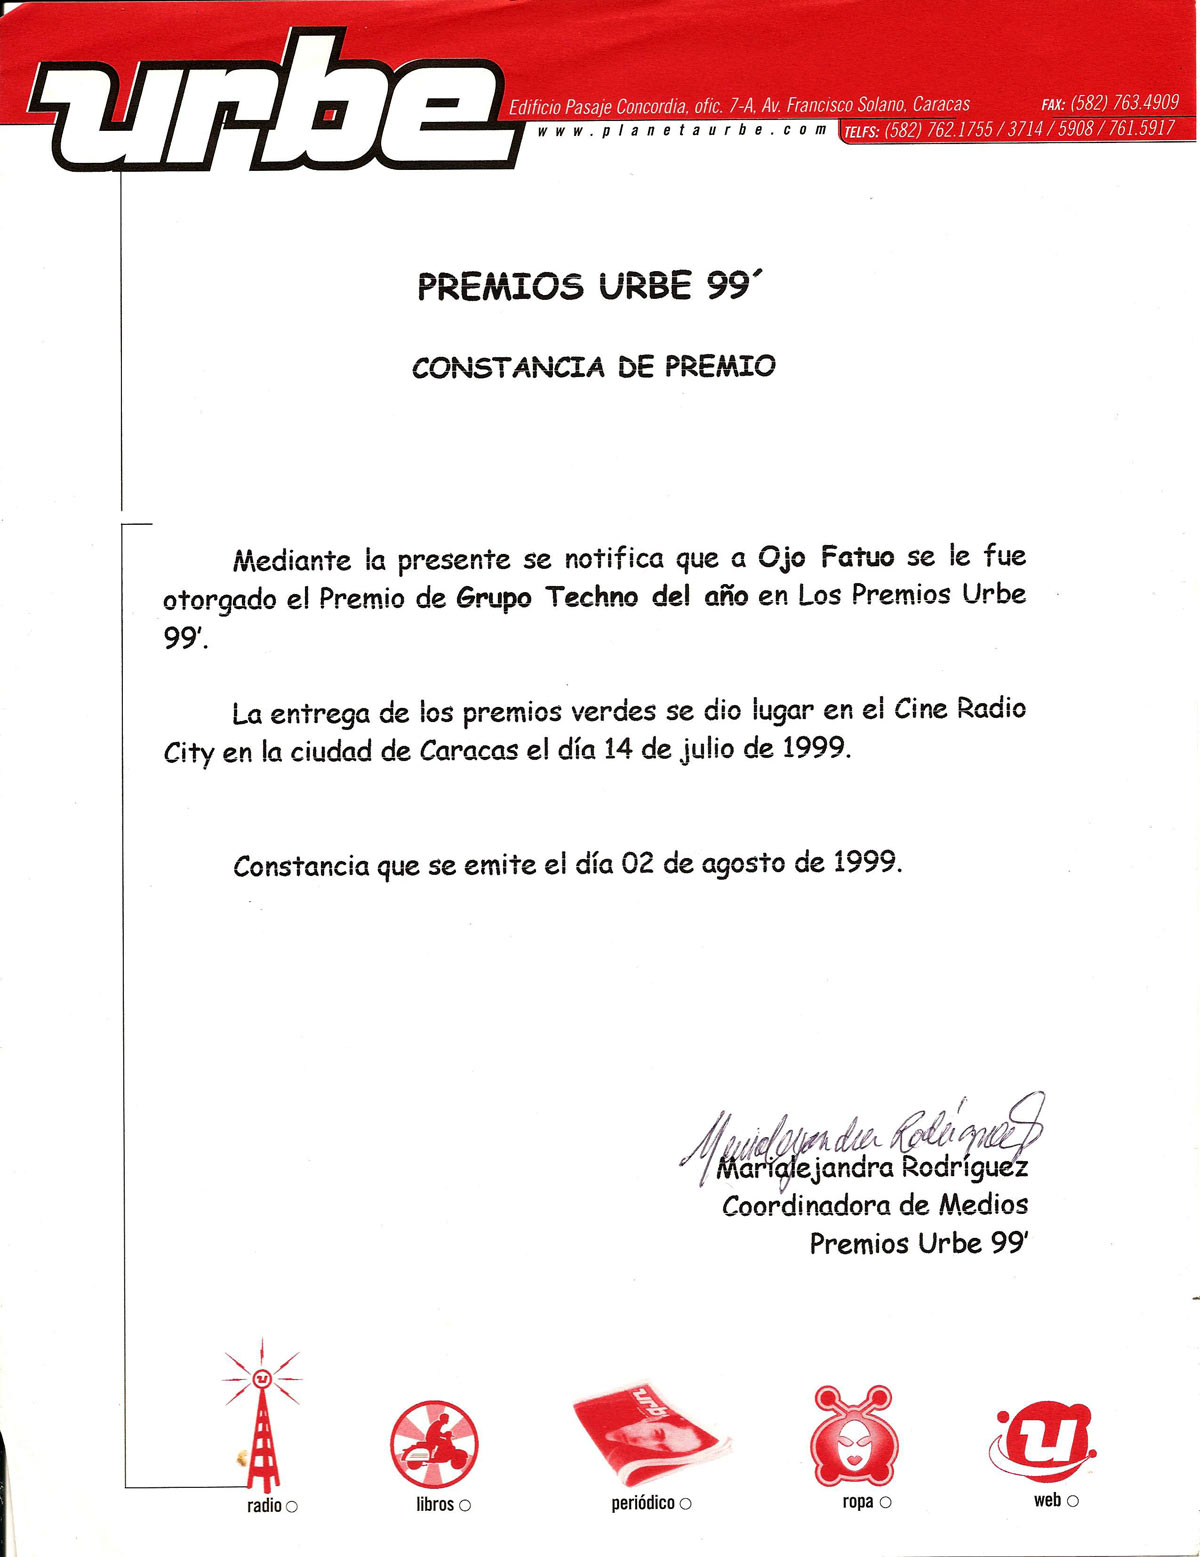 Urbe Awards Winner Certificated Venezuela Best Venezuela DJ 1999 Premios Urbe